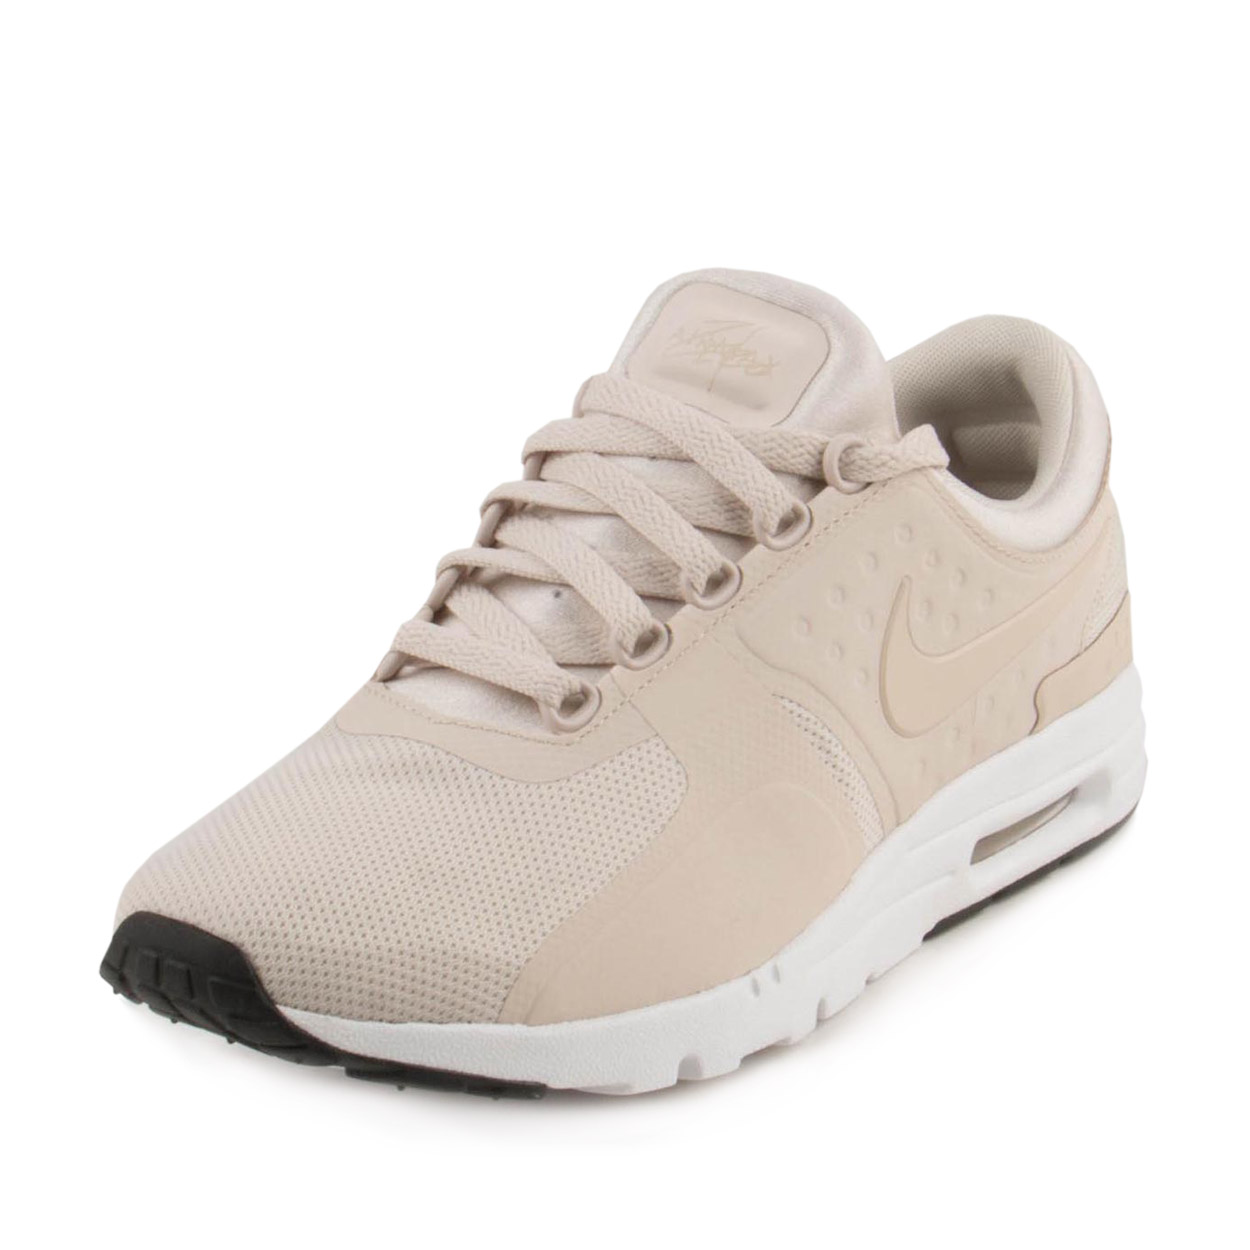 5d661a1d8c56b ... cheapest nike womens w air max zero orewood brown oatmeal 857661 103  8e166 8f375